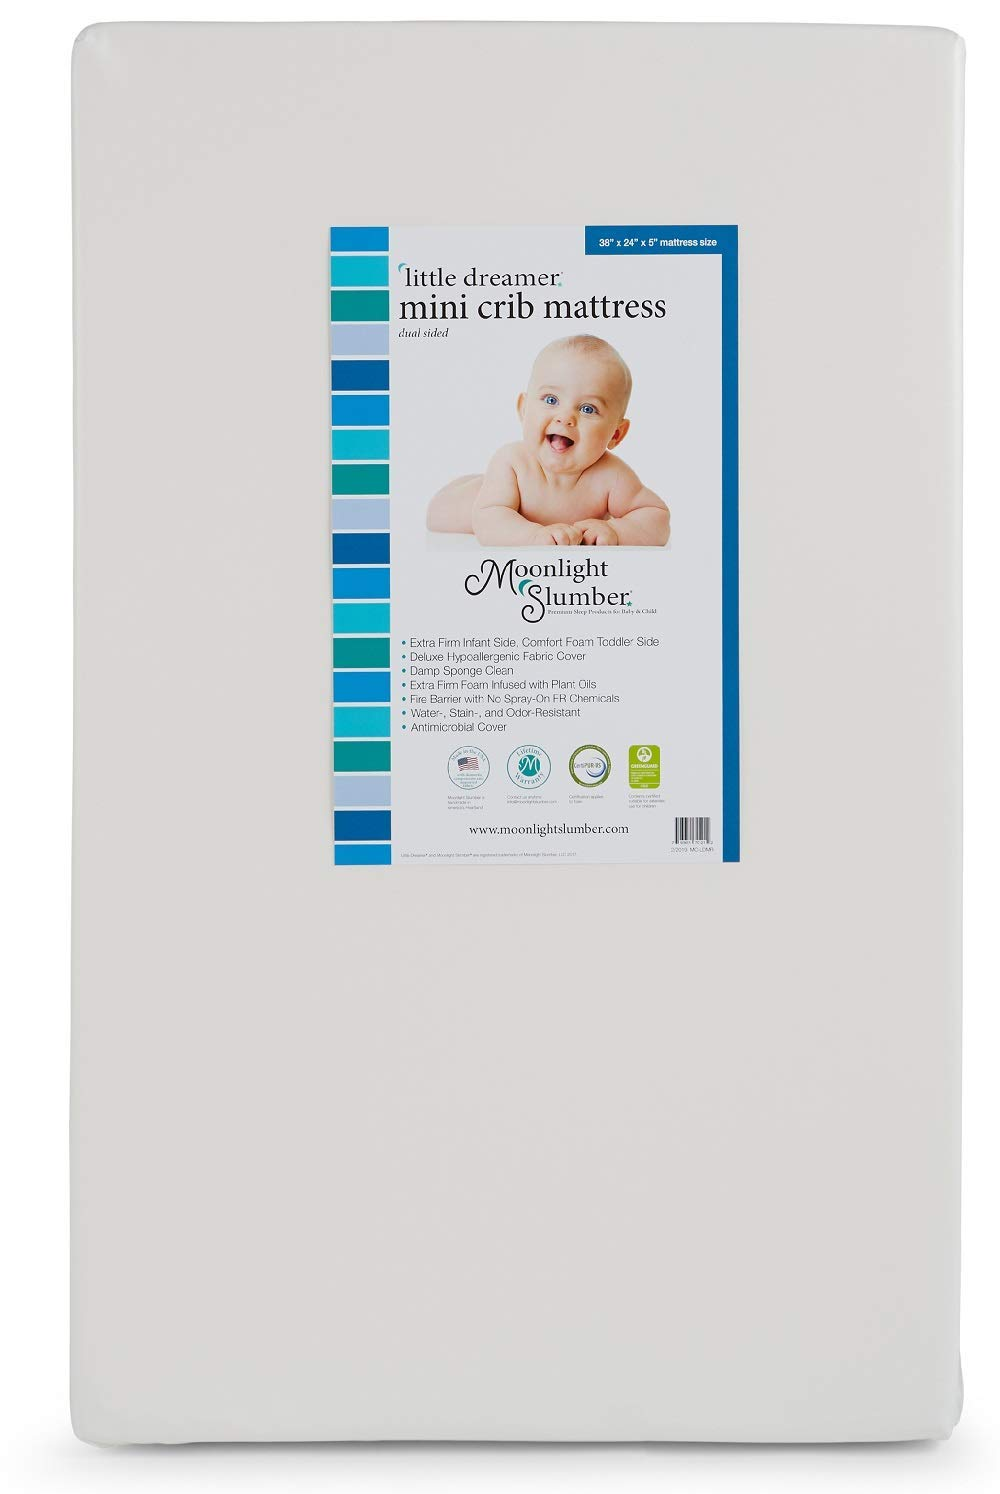 Moonlight Slumber Mini Little Dreamer Crib Mattress. Dual Sleep Surface - Water Resistant and Hypoallergenic Mini Mattress with Extra Firm Infant and Plush Toddler Sides (38x24x5 in.) by Moonlight Slumber